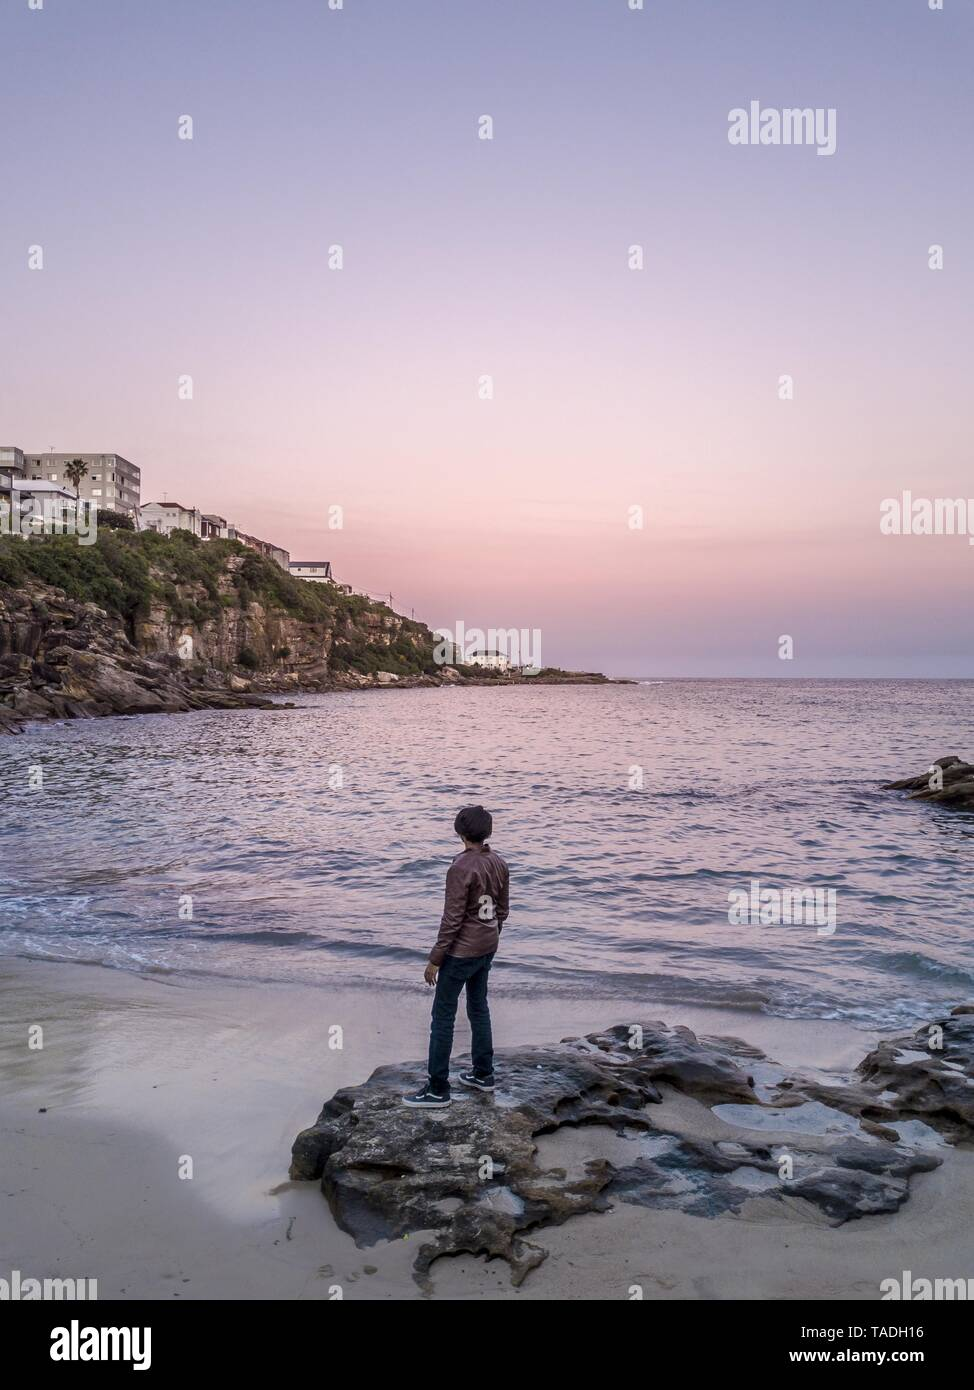 A male model in a coat standing on rocks at the shore of the sea enjoying the beautiful sunset Stock Photo